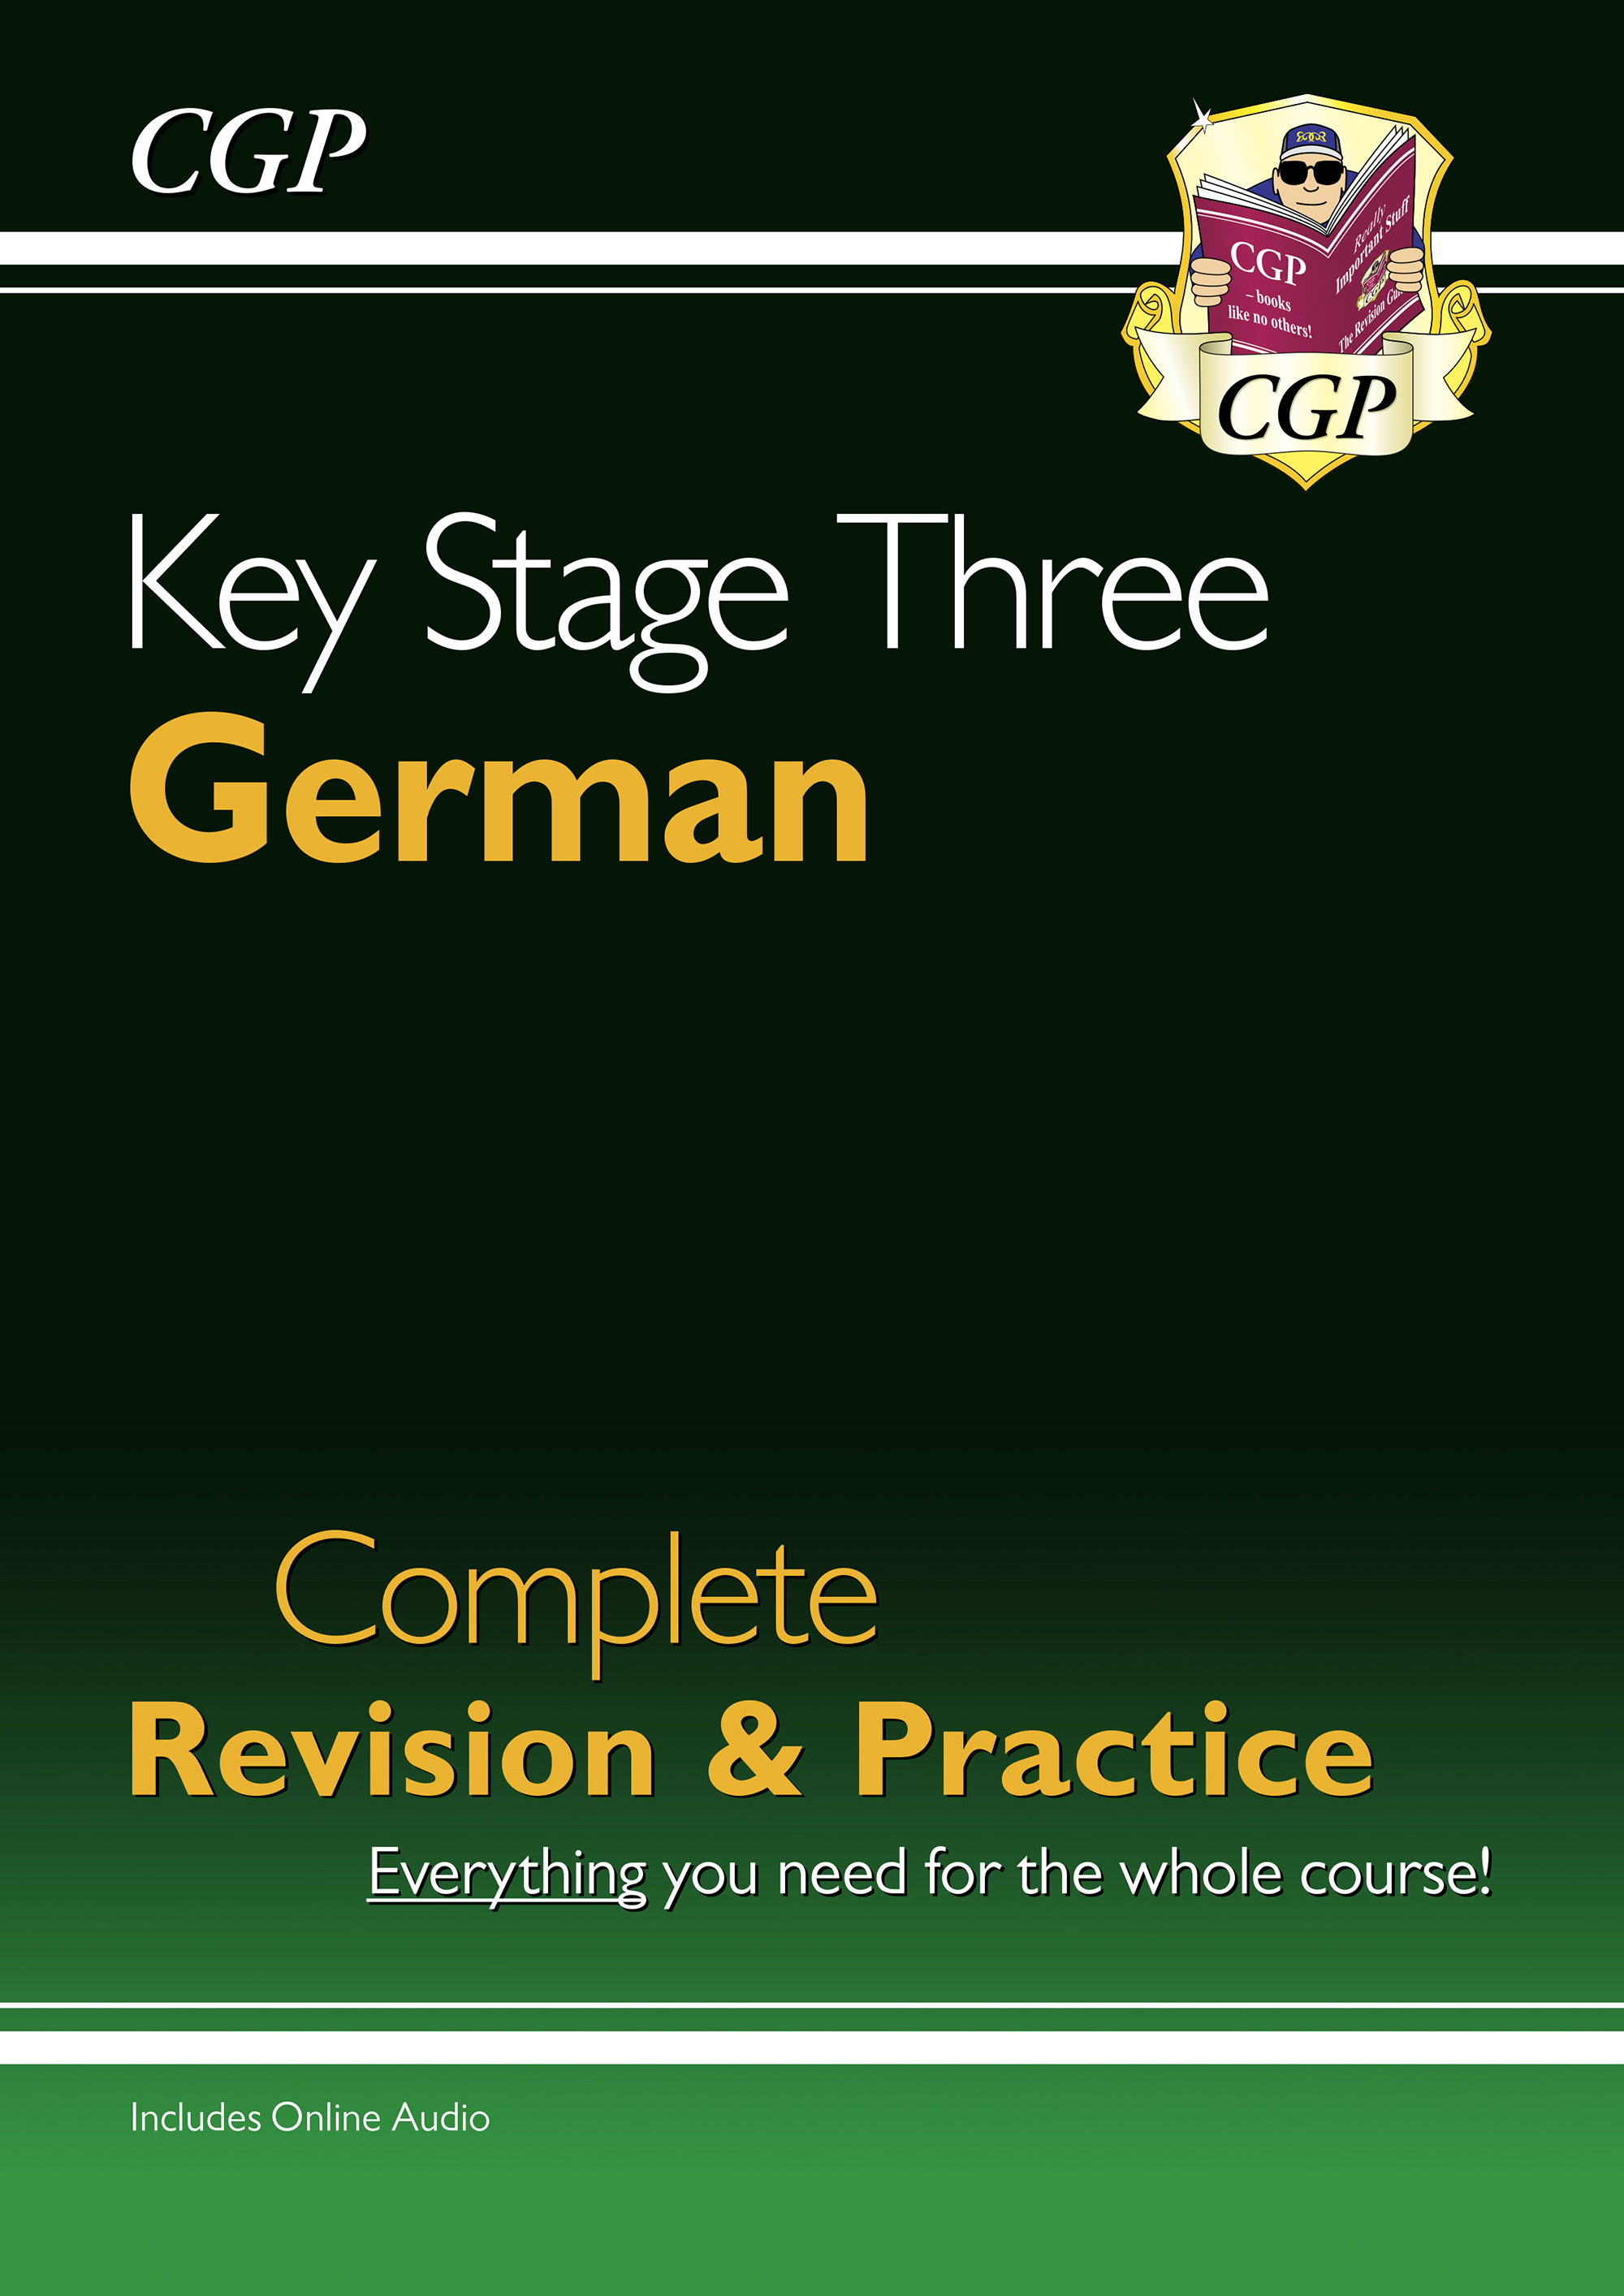 DHS32D - New KS3 German Complete Revision & Practice with Free Online Audio